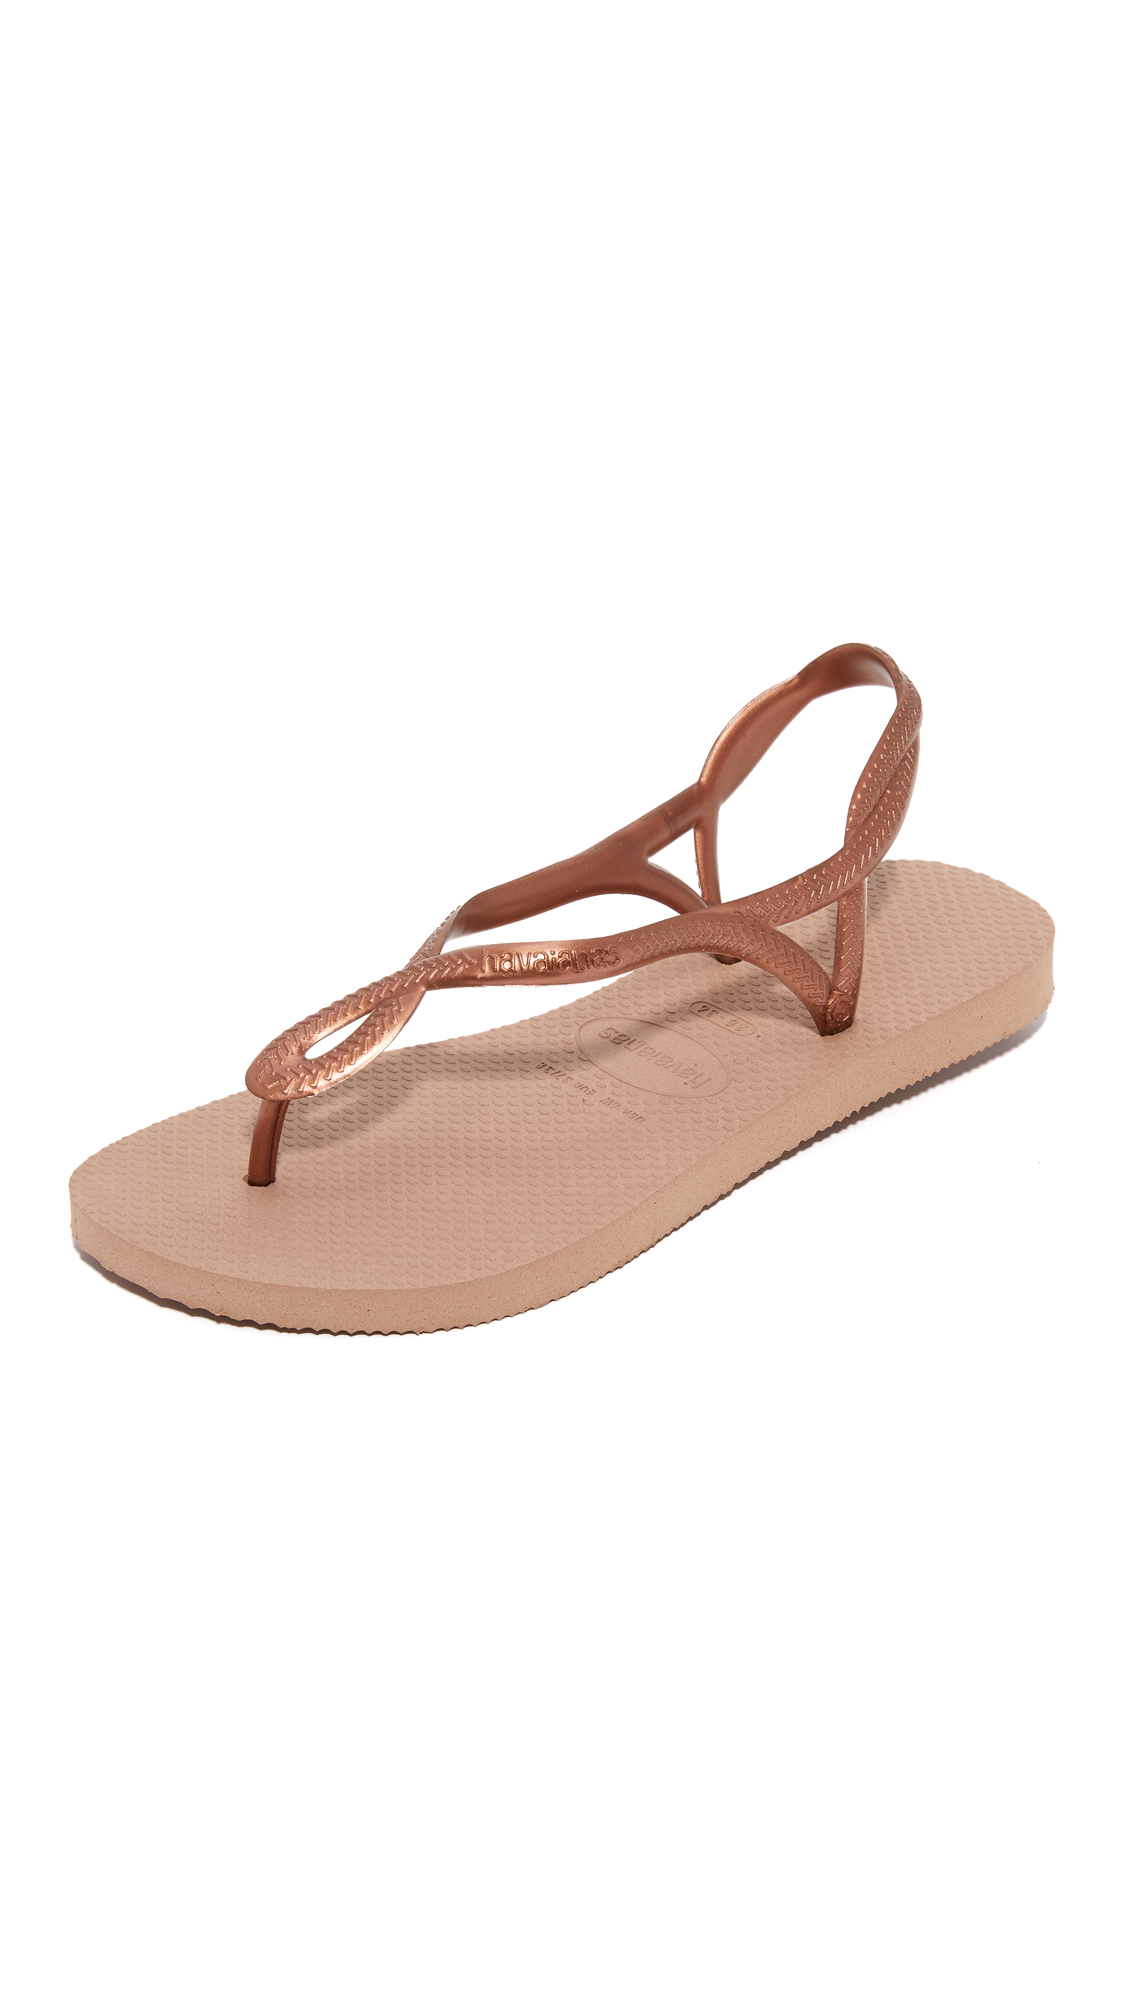 Havaianas Luna Sandals - Rose Gold/Rose Gold